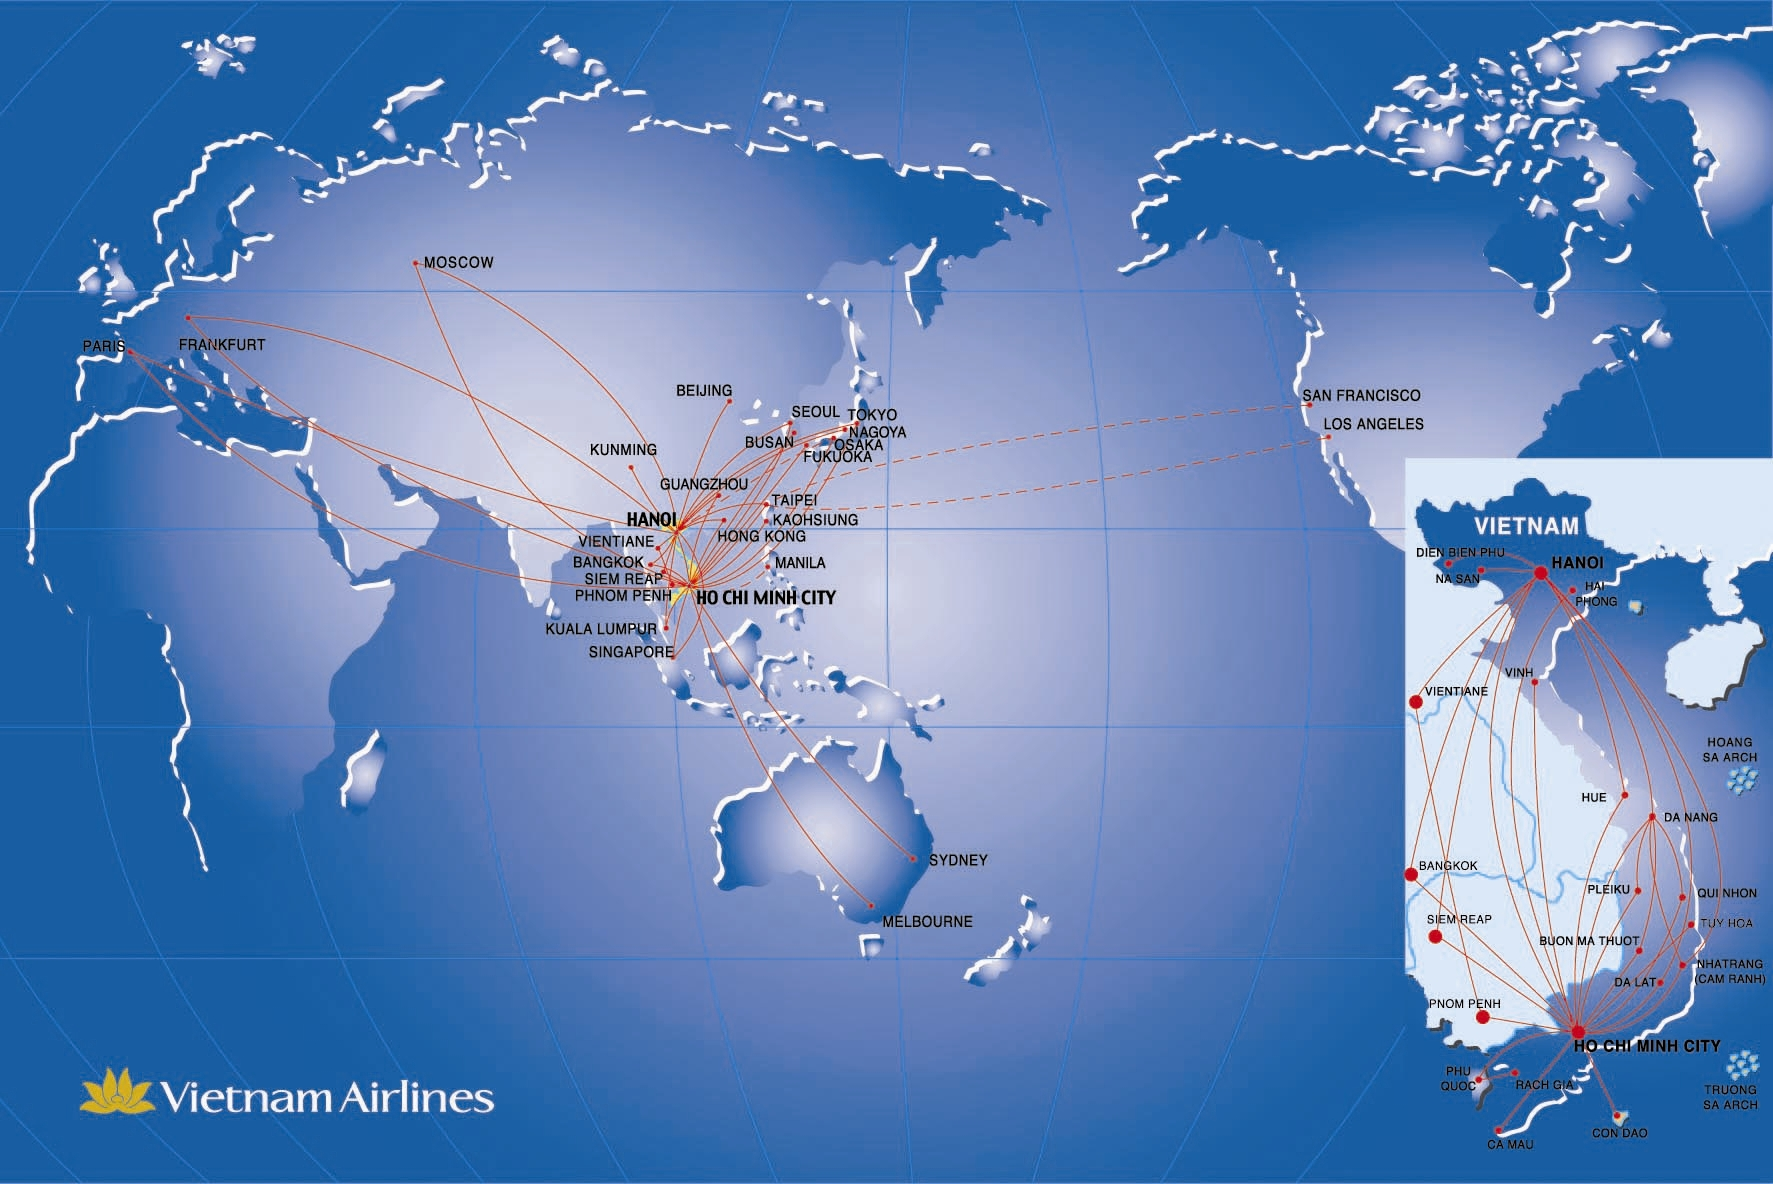 Vietnam airlines map world mappery gumiabroncs Image collections